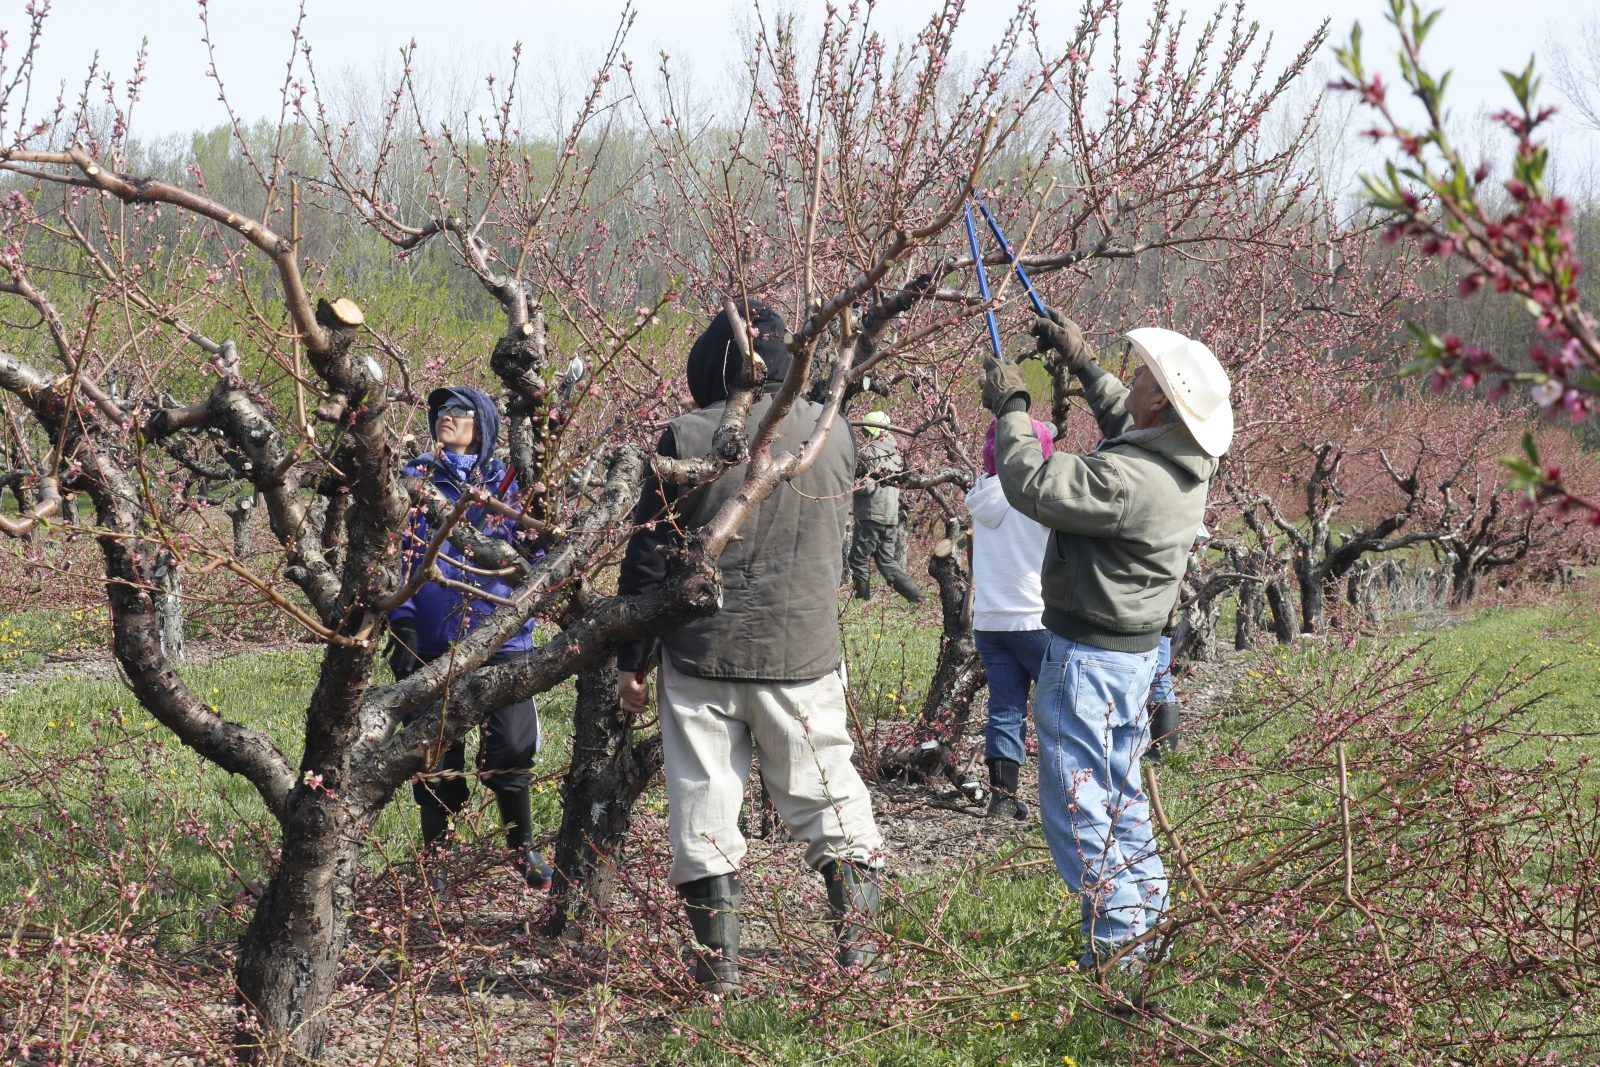 Upstate agriculture, including Bittner-Singer Orchards in Appleton,  relies on immigrant labor. (John Hickey/Buffalo News)